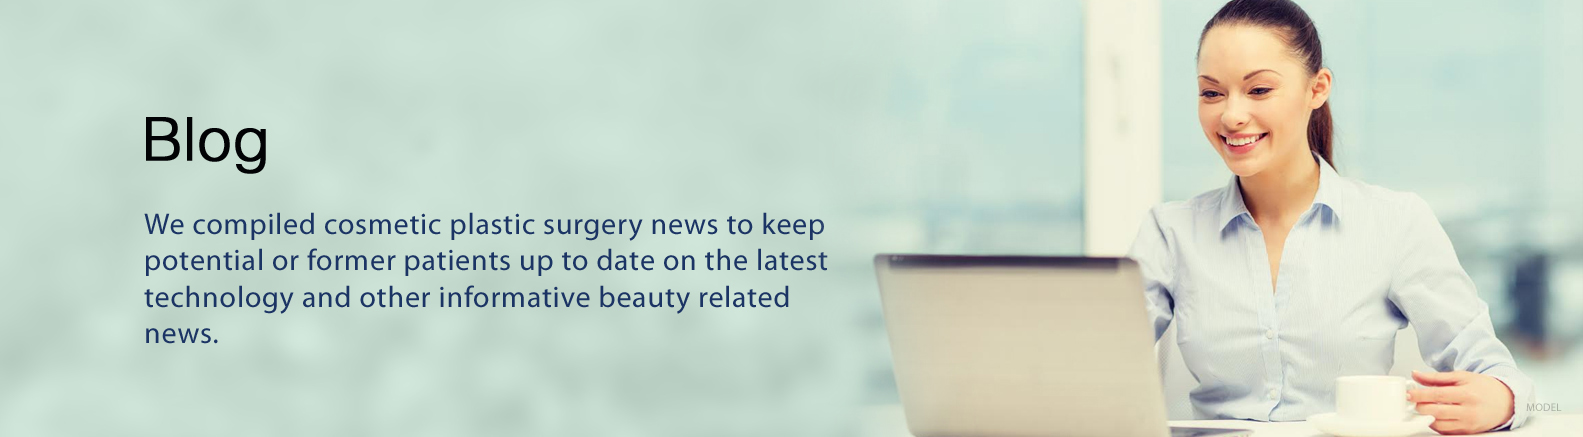 benefits of cosmetic surgery essay